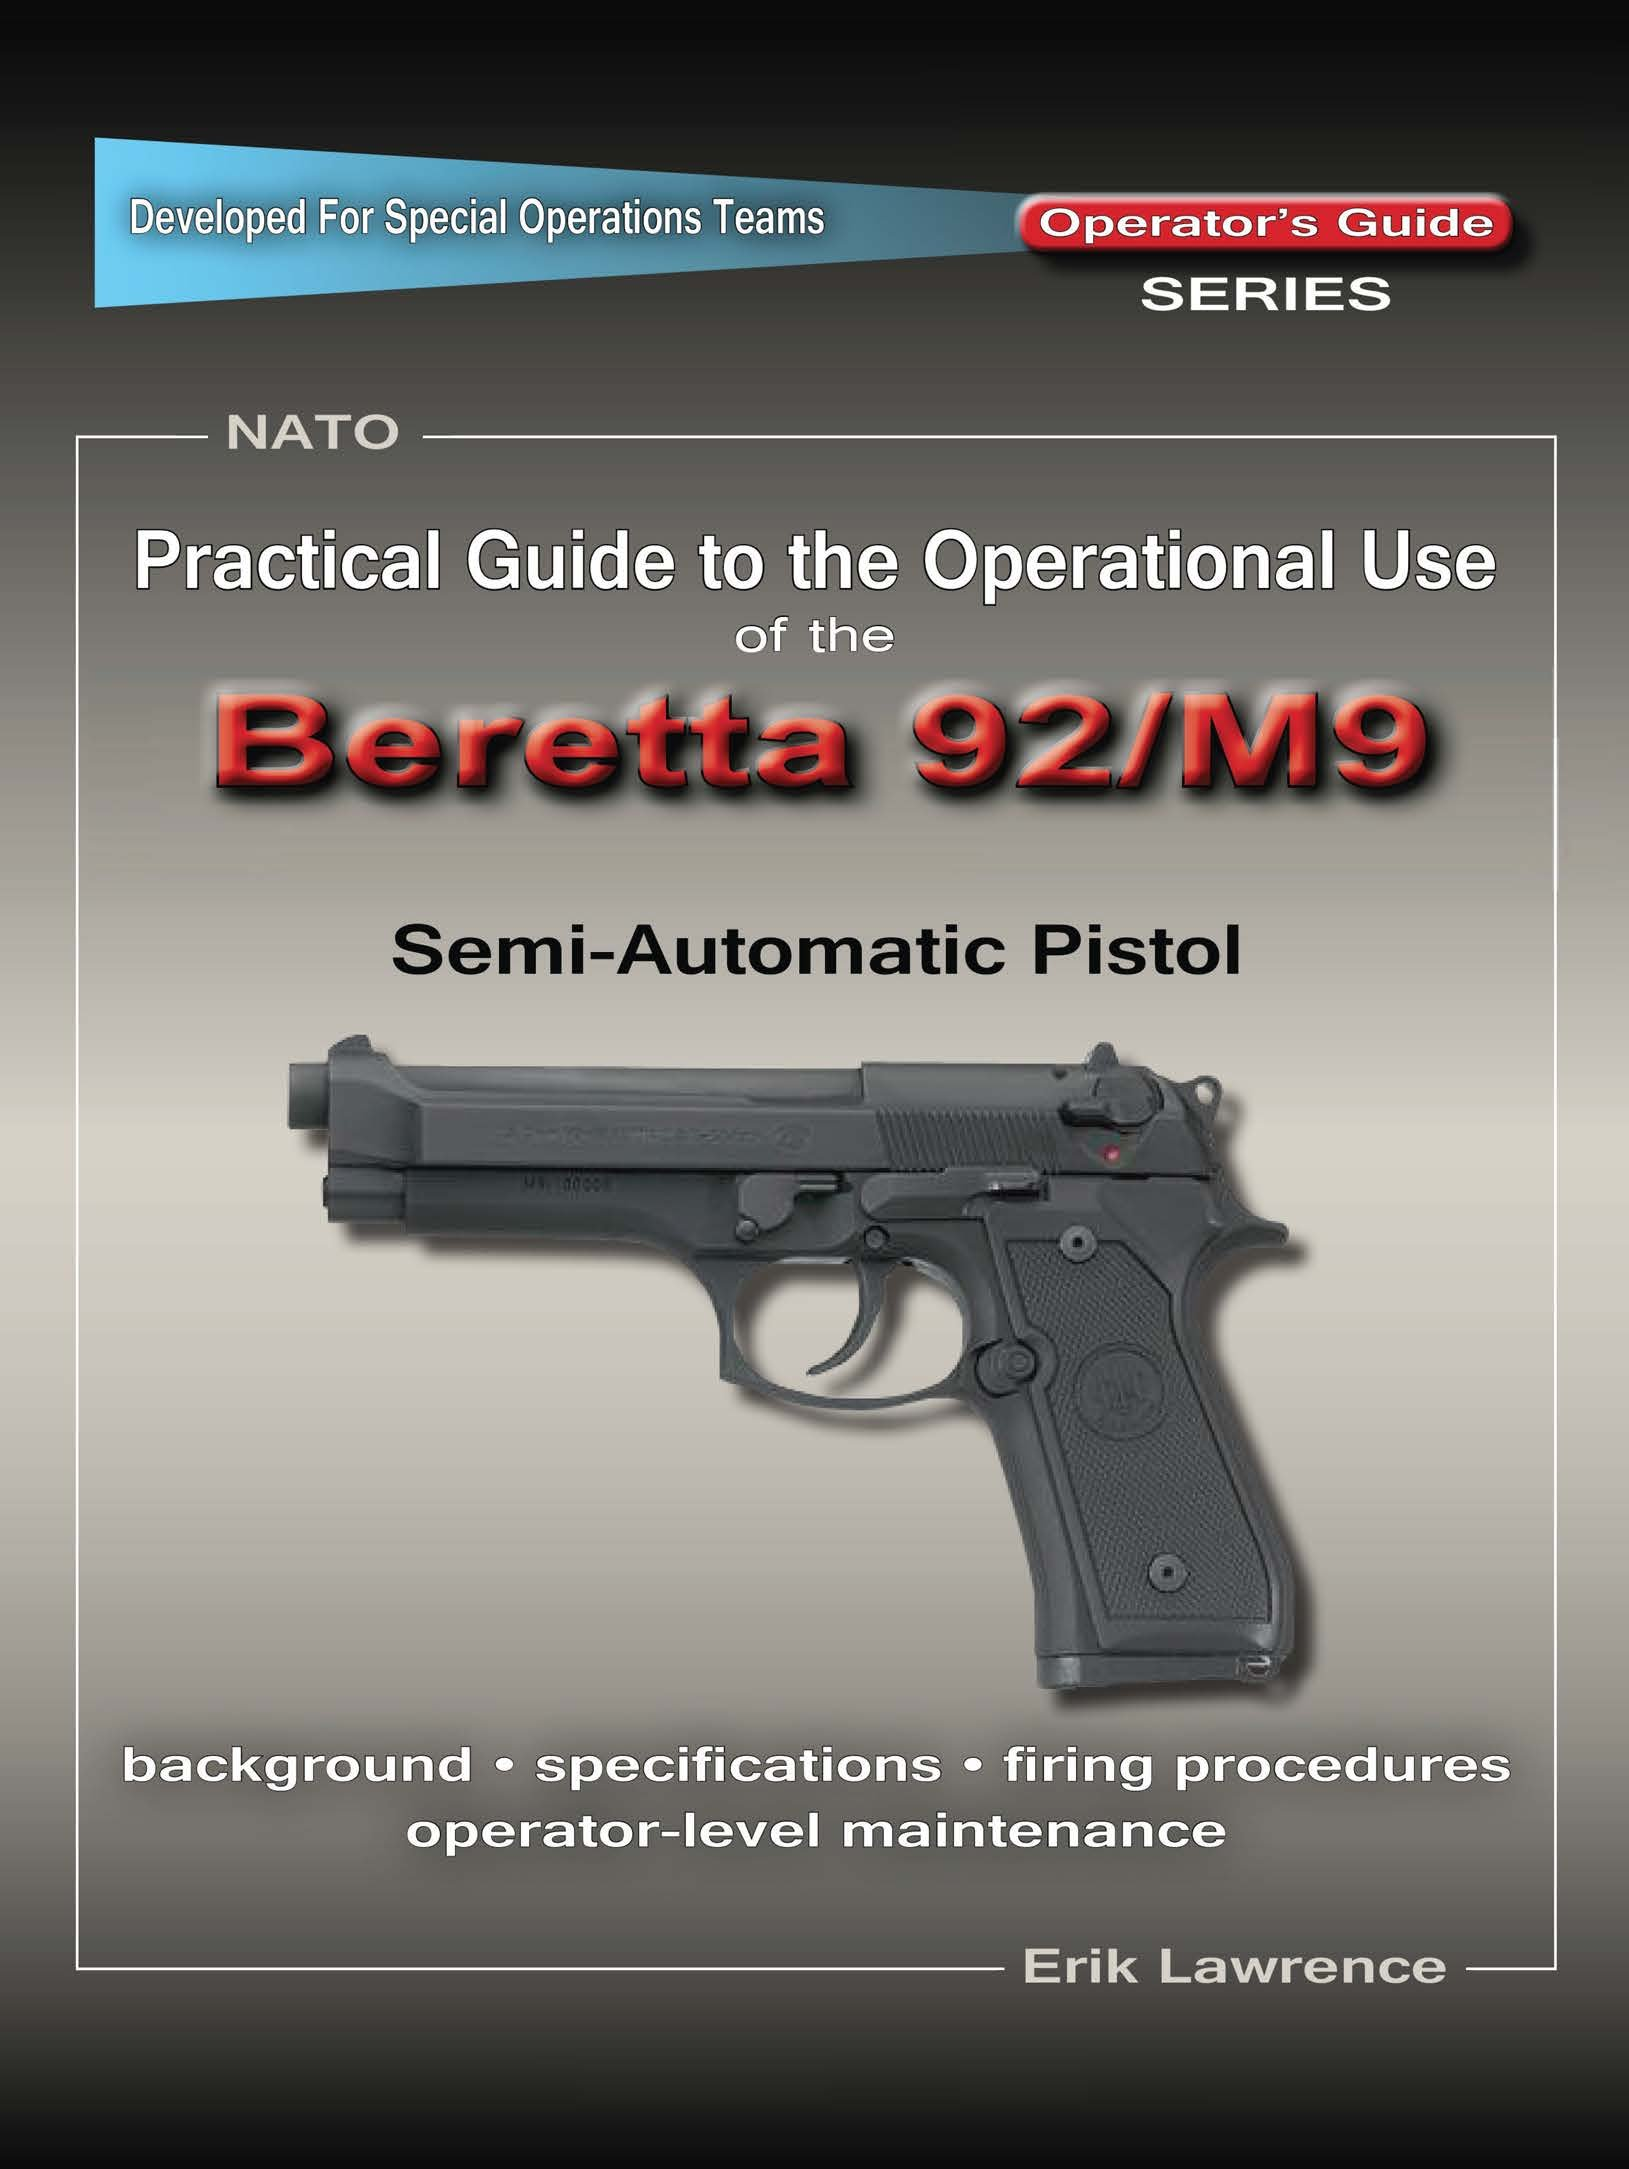 Practical Guide to the Operational Use of the Beretta 92/M9